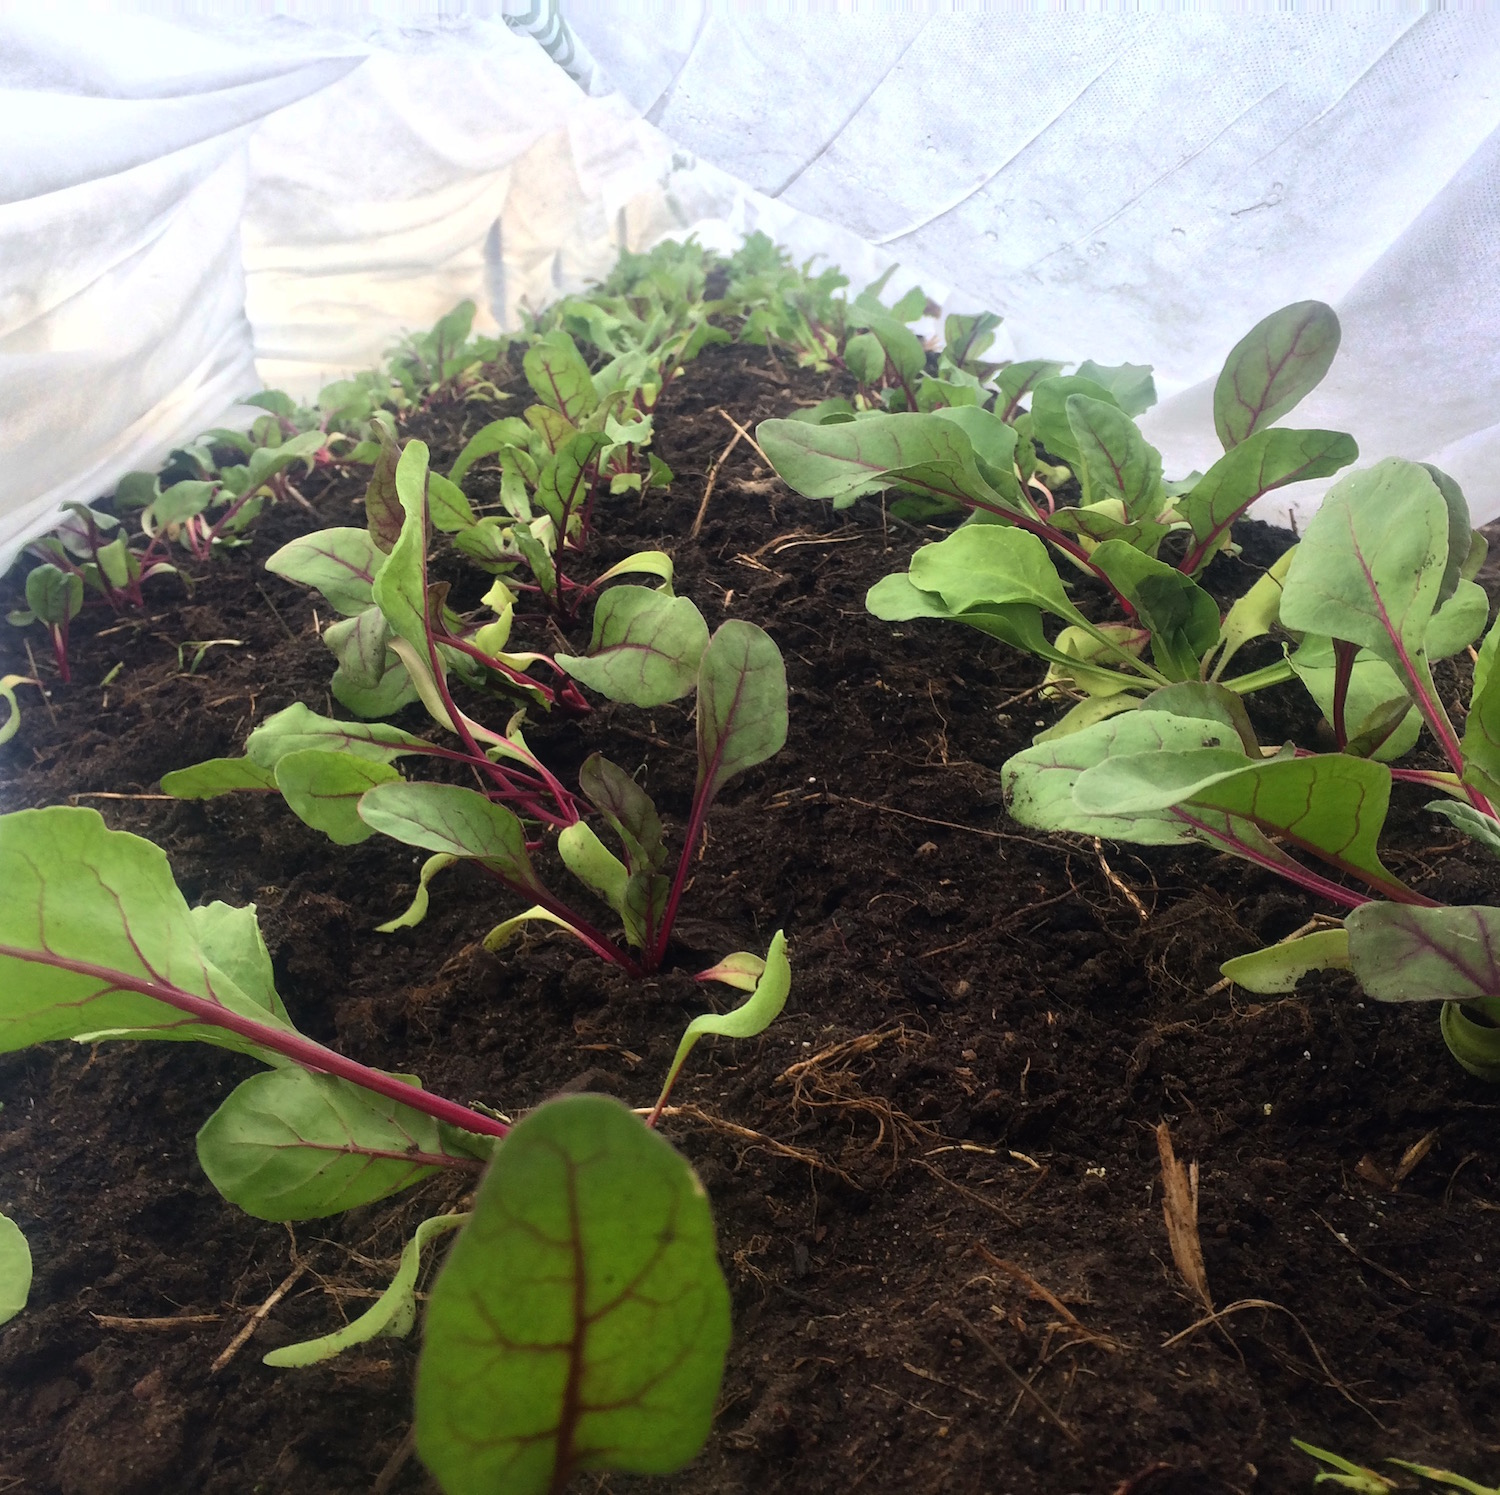 Beets, looking pretty upbeet.